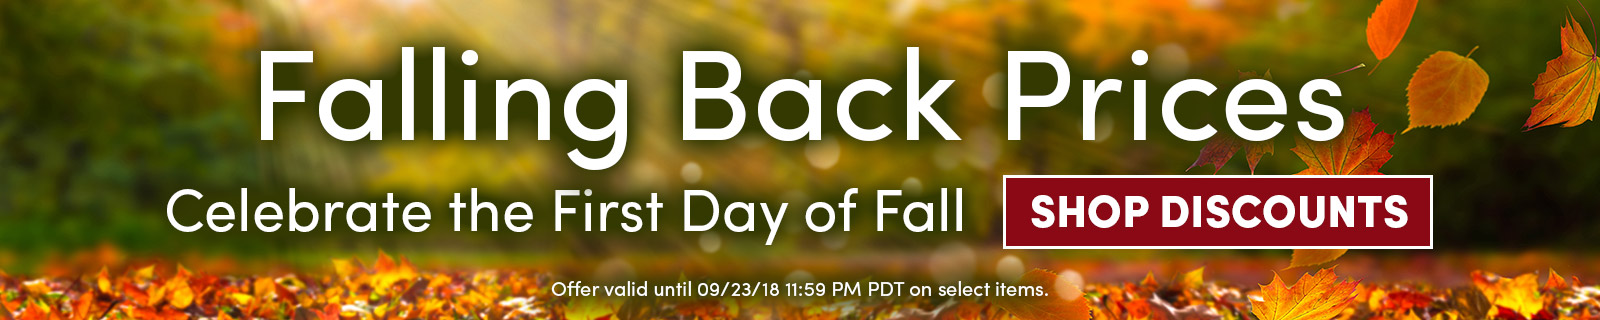 Falling Back Prices - Celebrate the First Day of Fall - SHOP DISCOUNTS